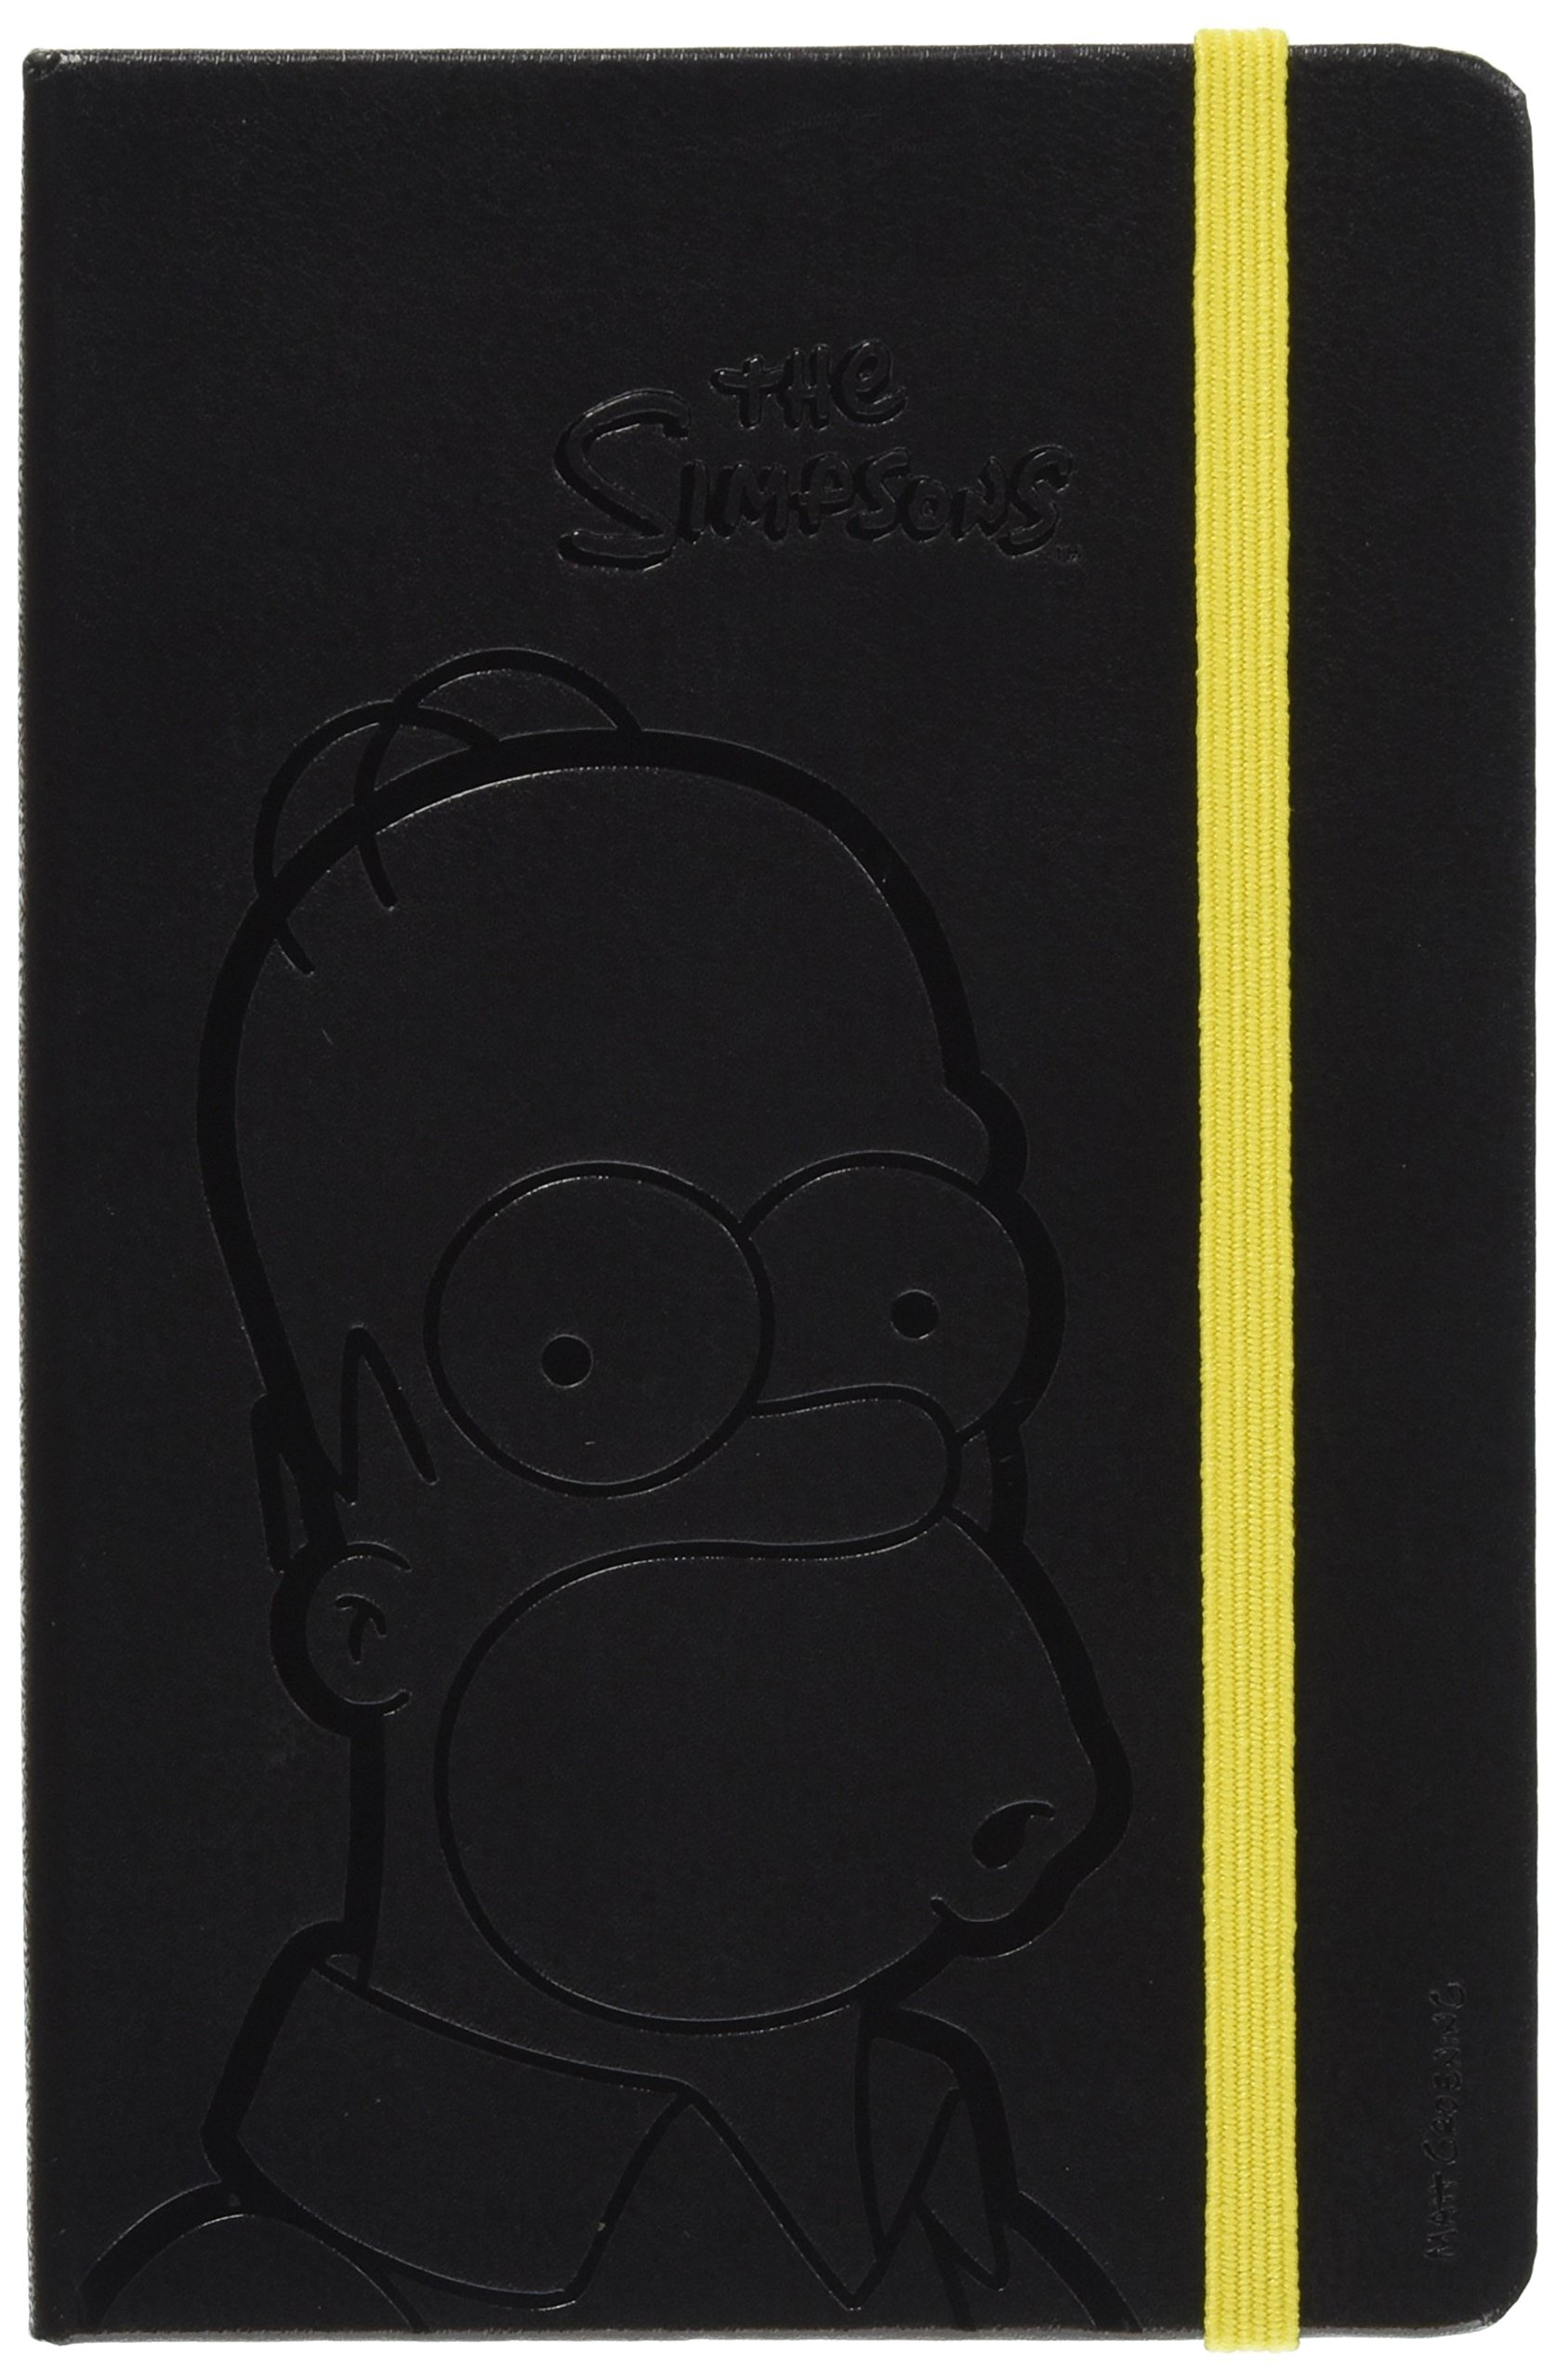 Moleskine The Simpsons Limited Edition Notebook, Pocket,...